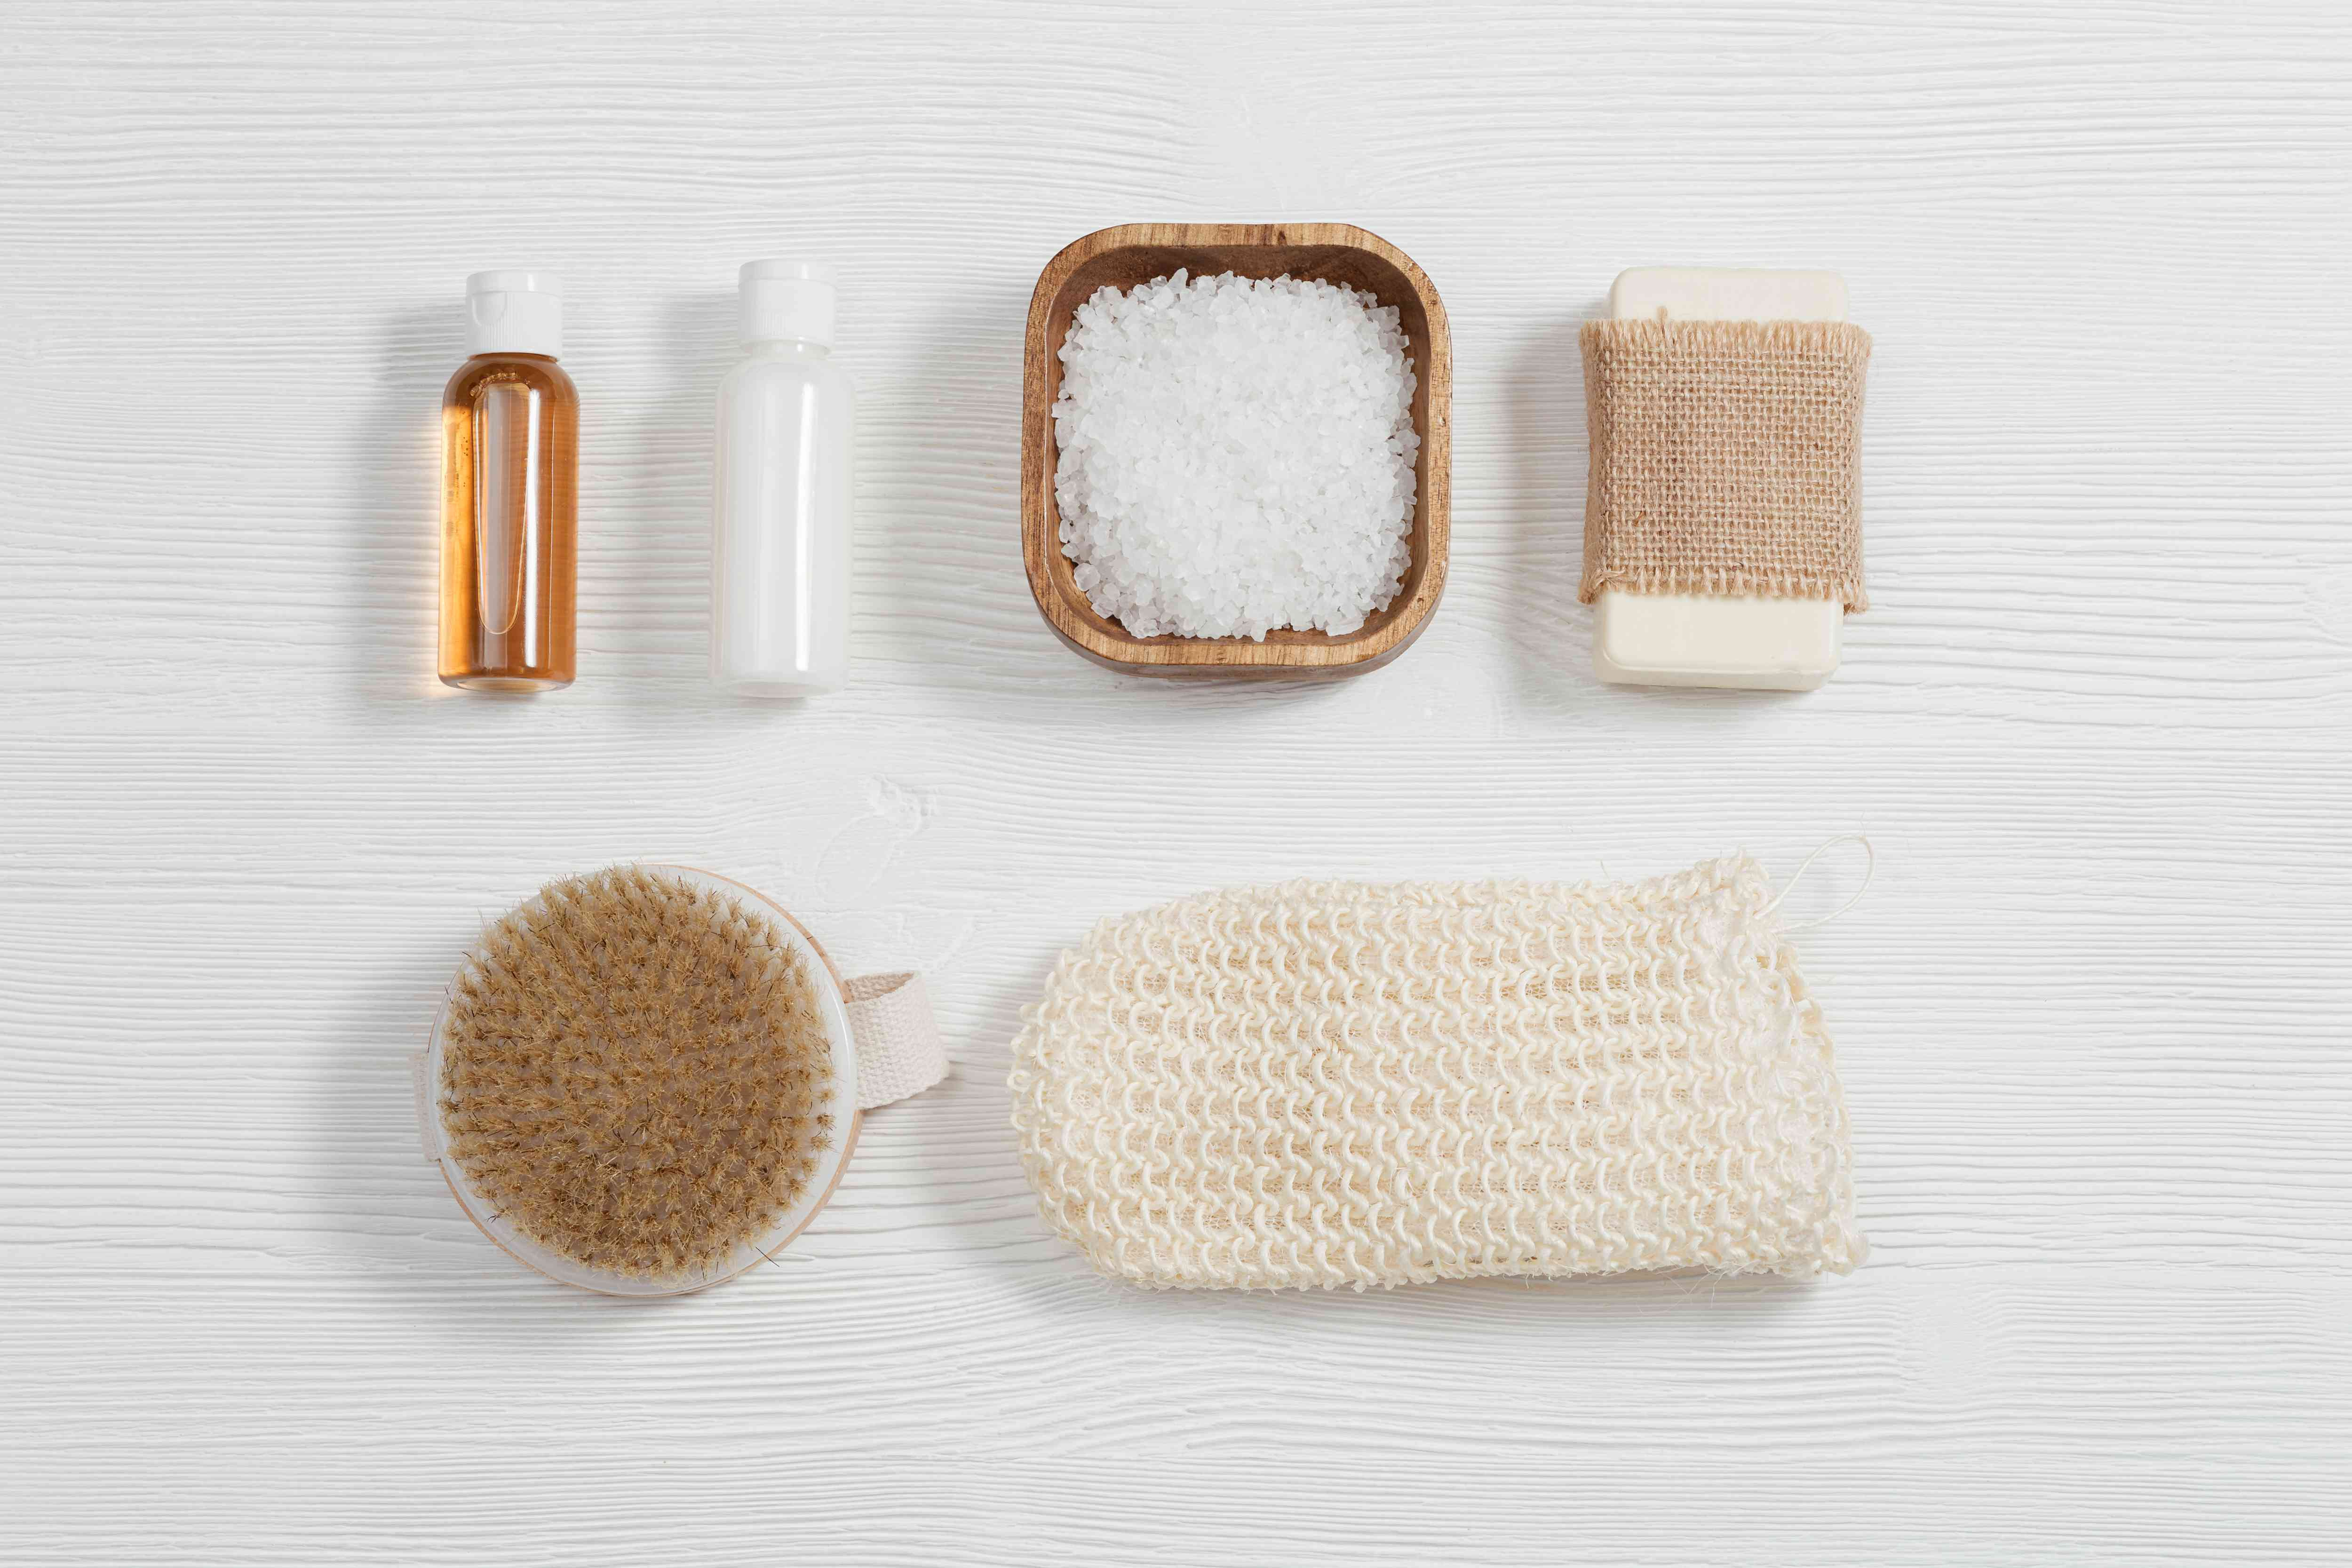 Spa setting for body care and beauty treatment. Bottles with gel and shampoo, soap, sea salt, washcloth for bath.